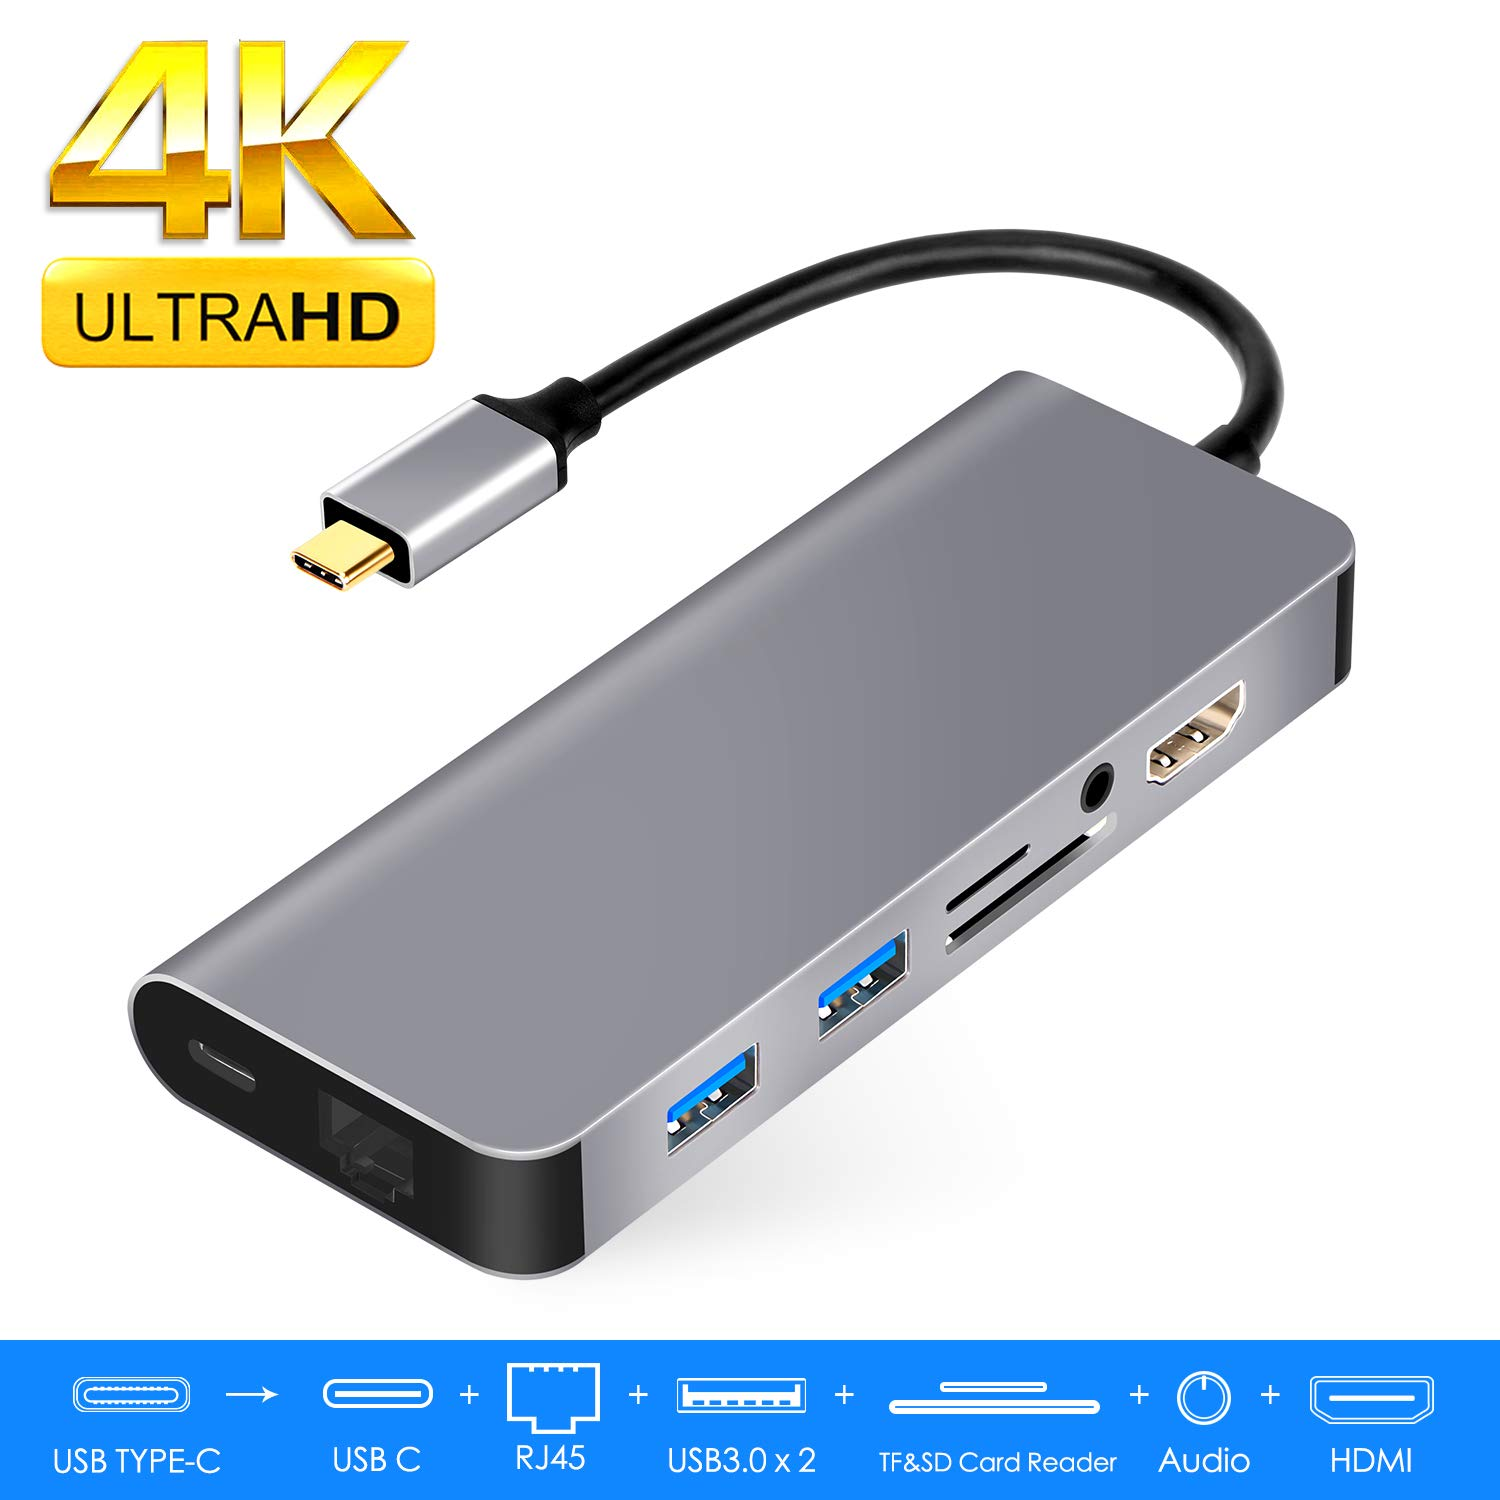 USB C Hub,WU-MINGLU 8 in 1 Type C Hub Adapter with 4K HDMI,Gigabit Ethernet,USB-C Power Delivery,3.5mm Audio,2 USB 3.0 Ports, SD/TF Card Reader, Portable for MacBook Pro Nintendo Switch,USB C Devices